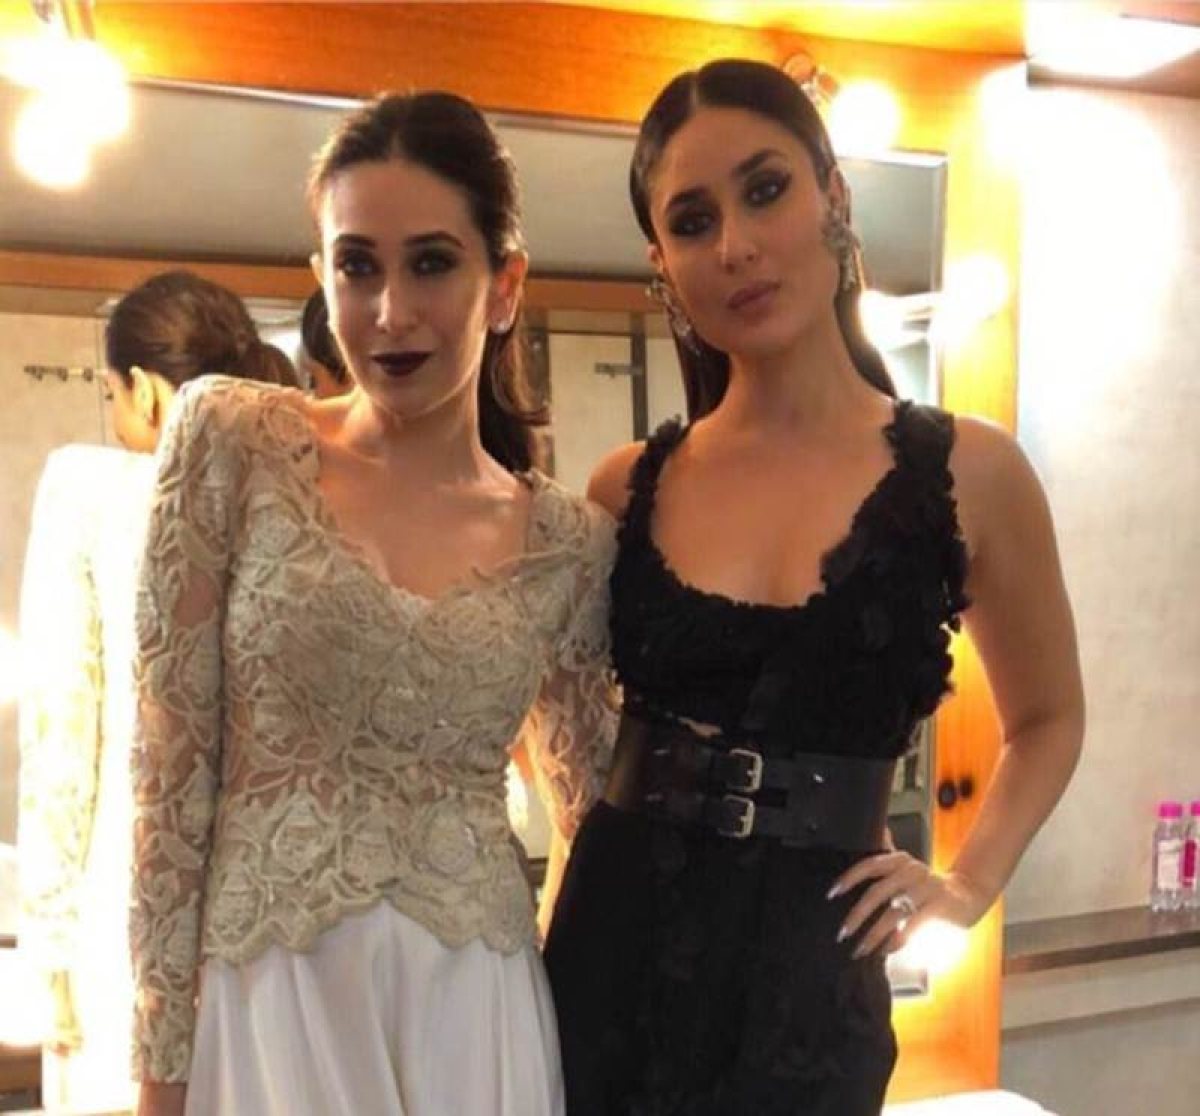 Lakme Fashion Week S|R 2018 Highlights: Sisters Kareena and Karisma set ramp on fire in finale; see pics